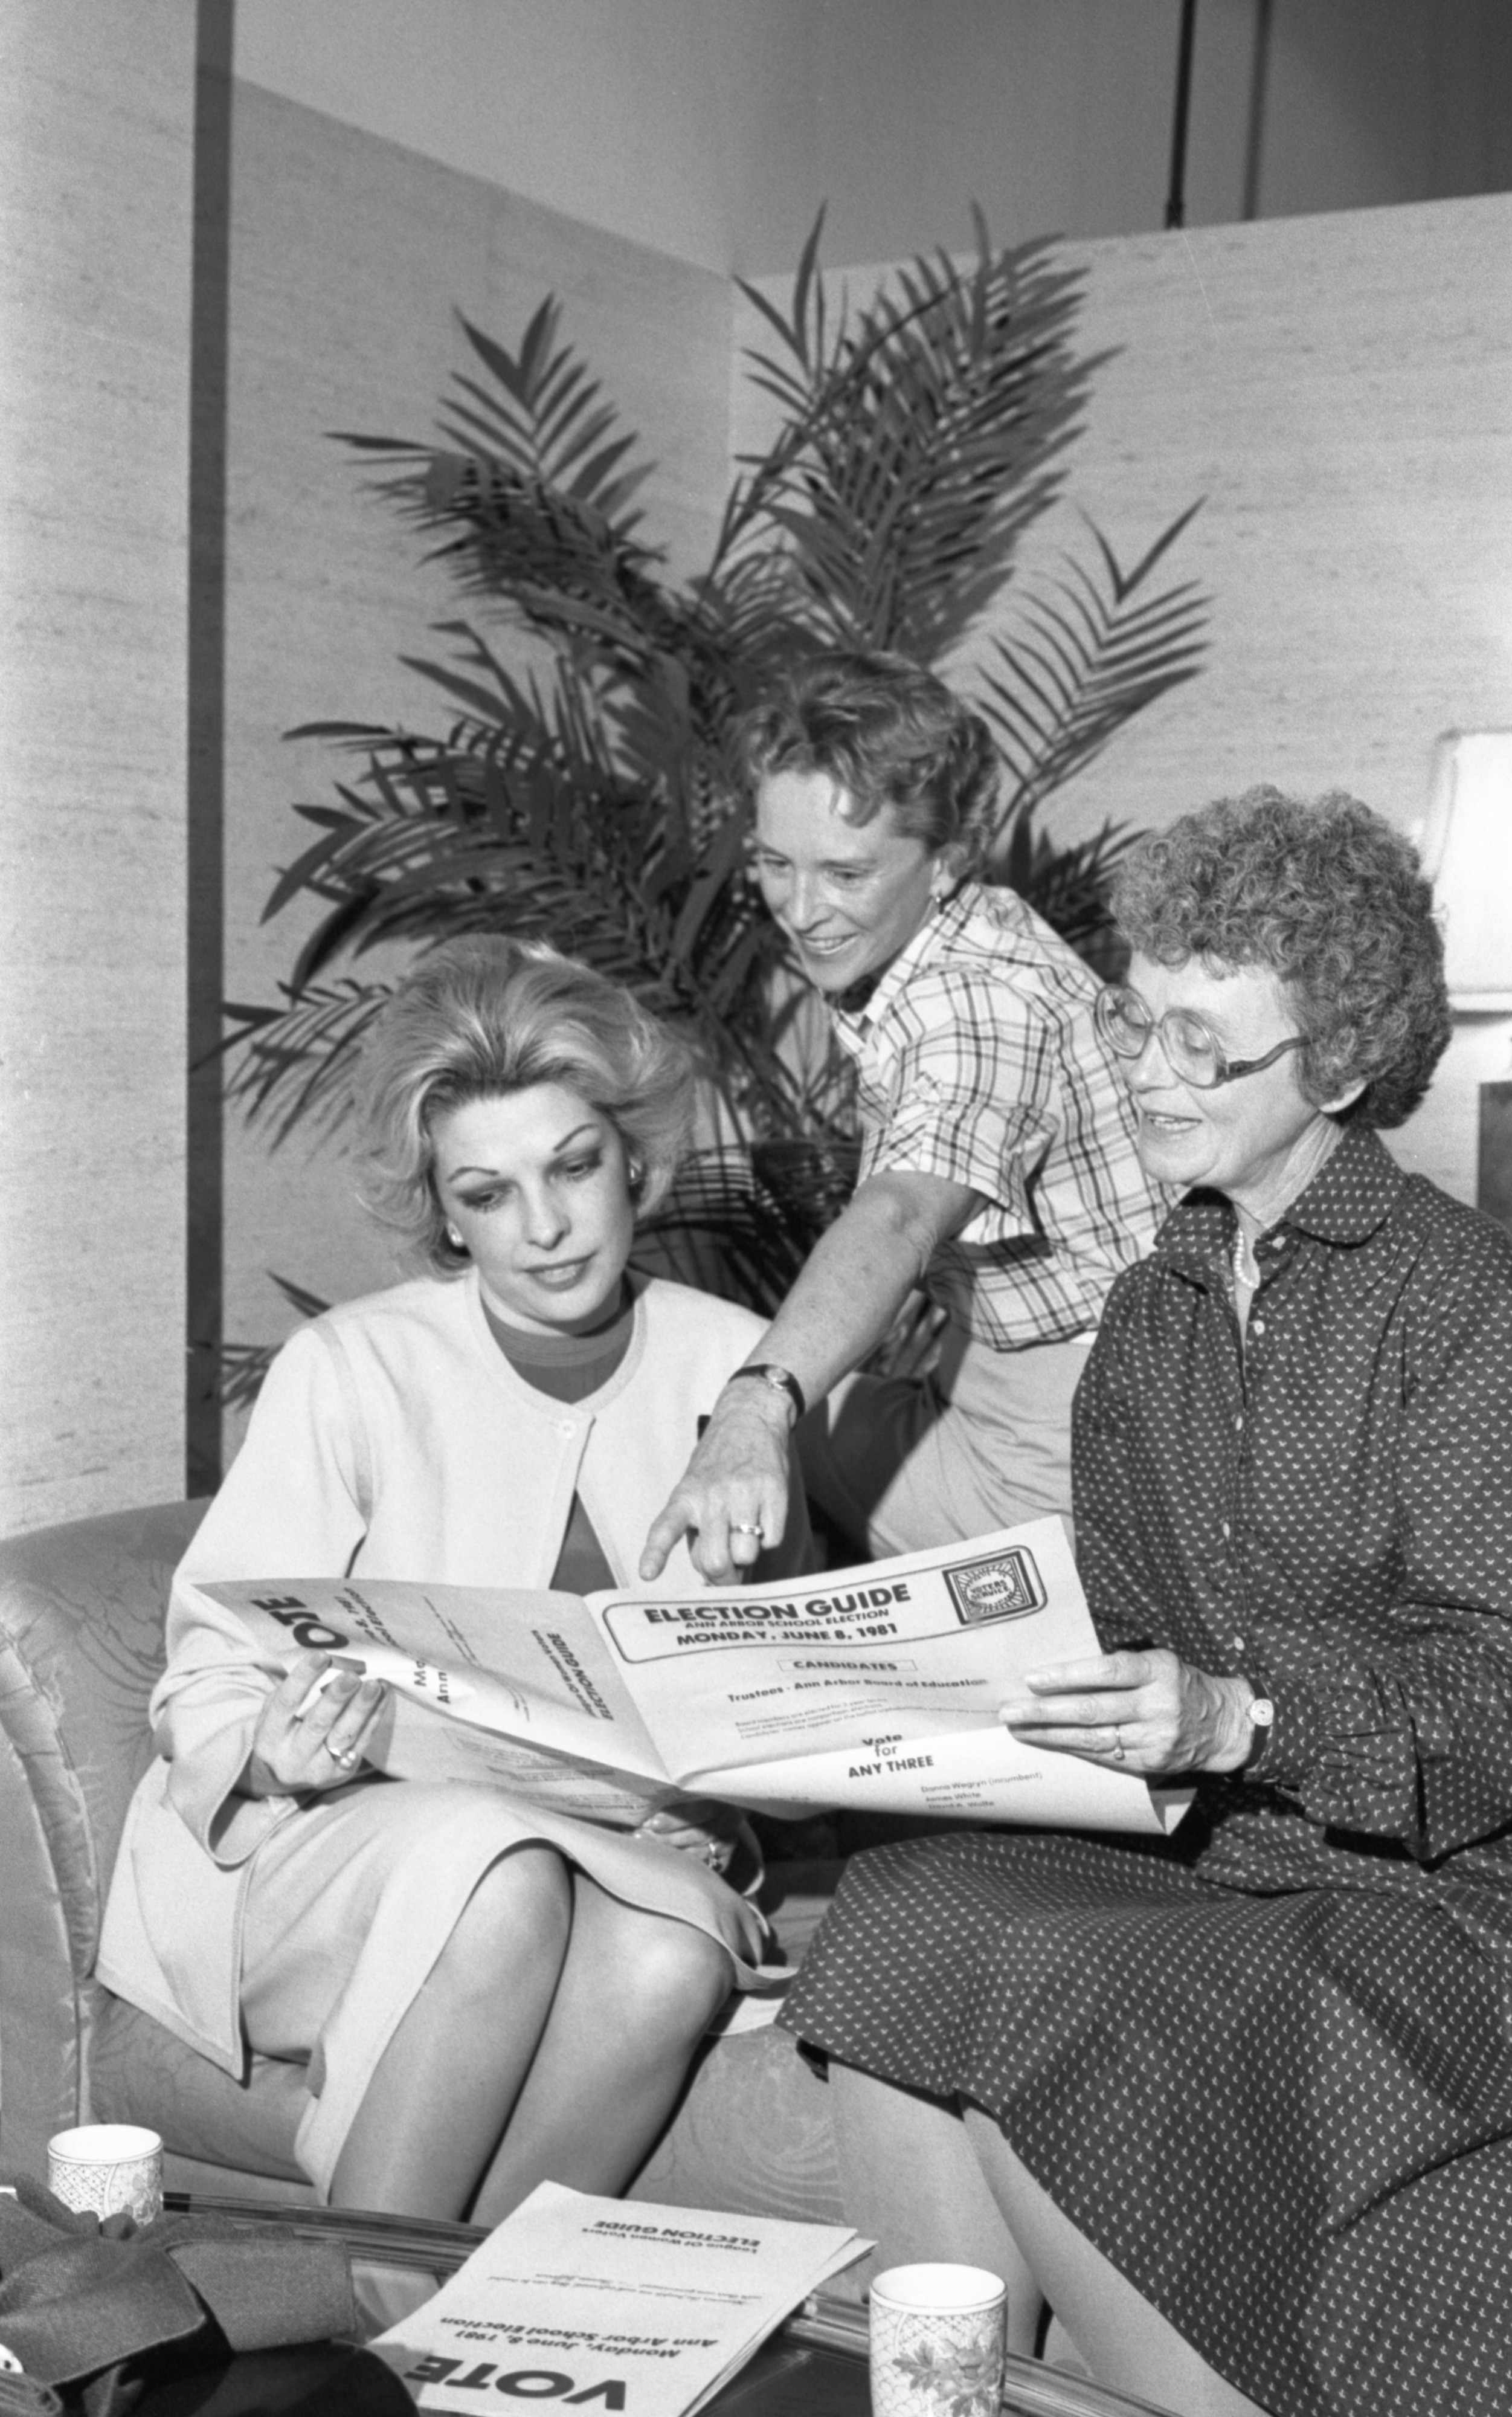 Carol Silvestro, Jo Howe, & Helen West With The League Of Women Voters Election Guide, June 1981 image